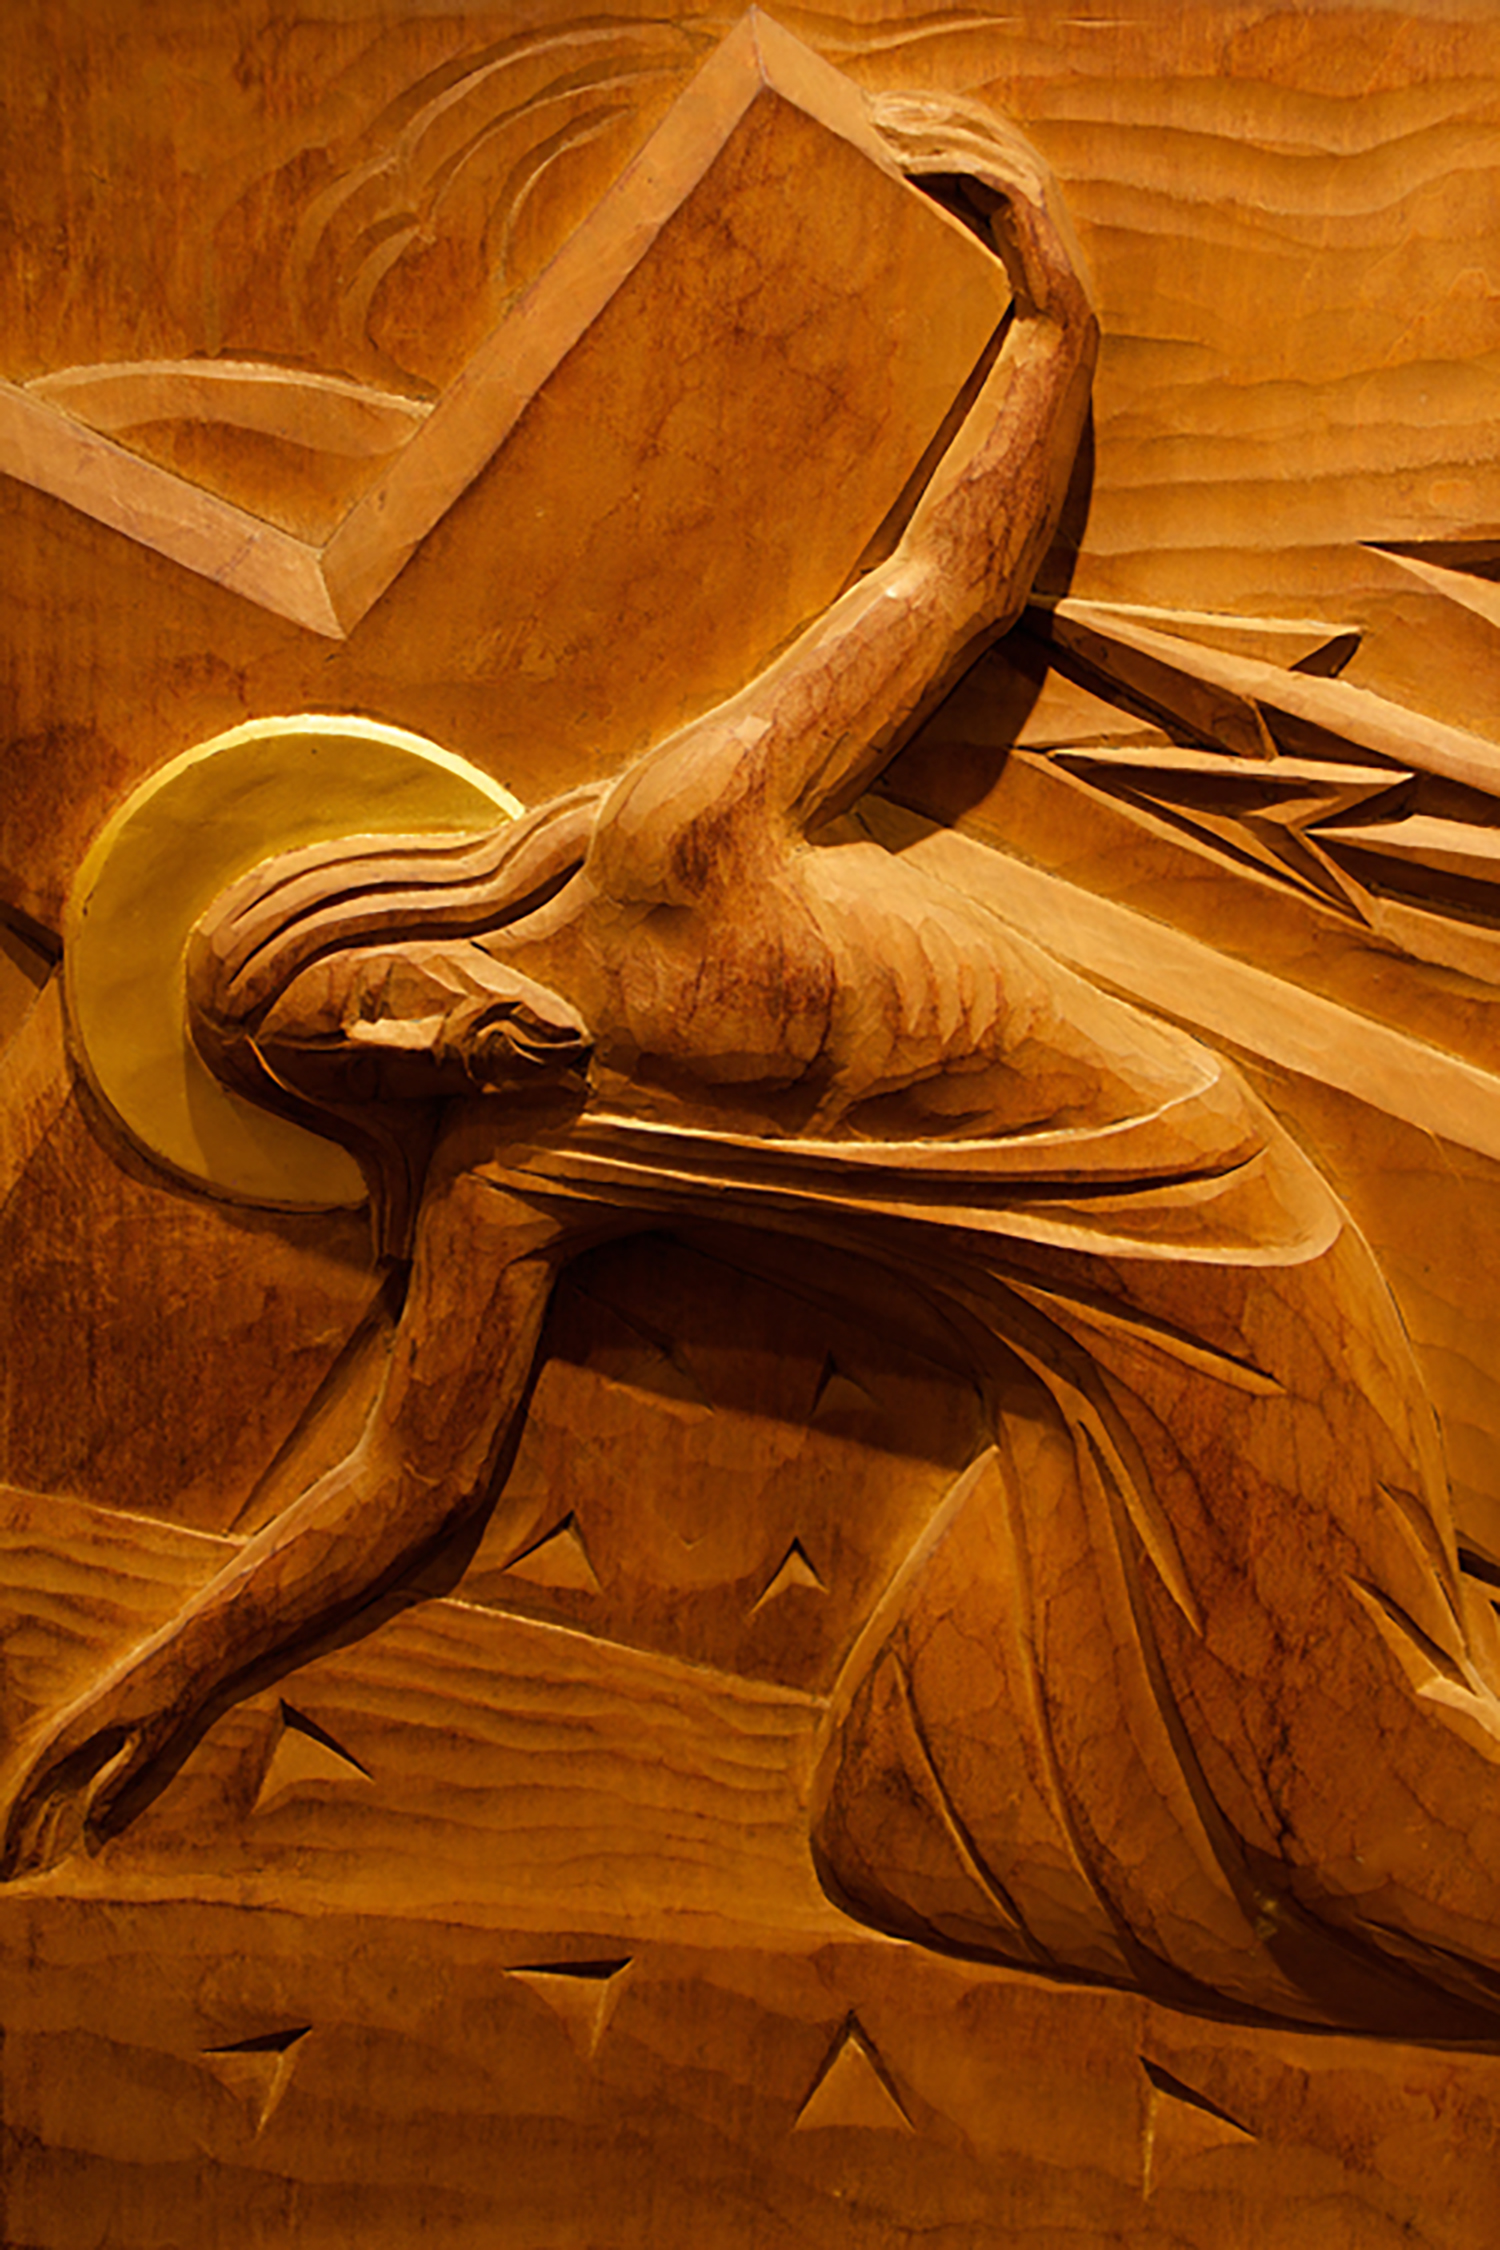 Station VII: Jesus Falls the Second Time; carved wood, St. Timothy's Episcopal Church.